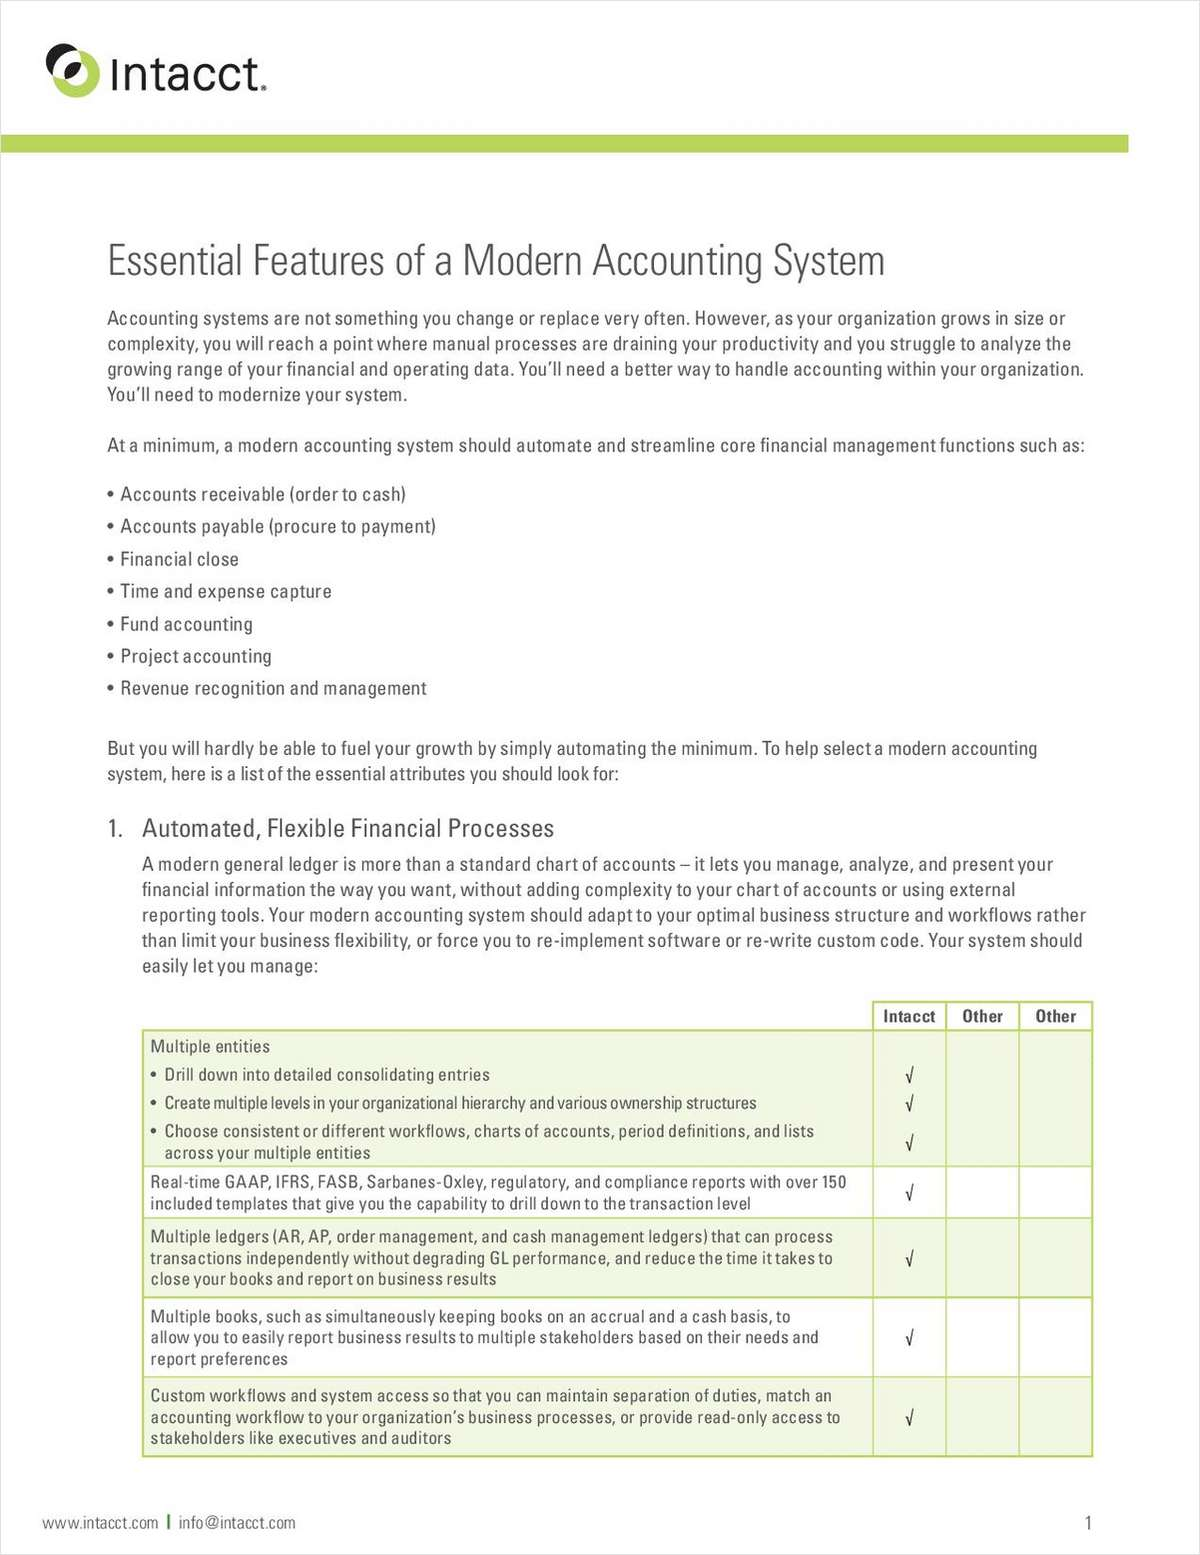 Essential Features of a Modern Accounting System